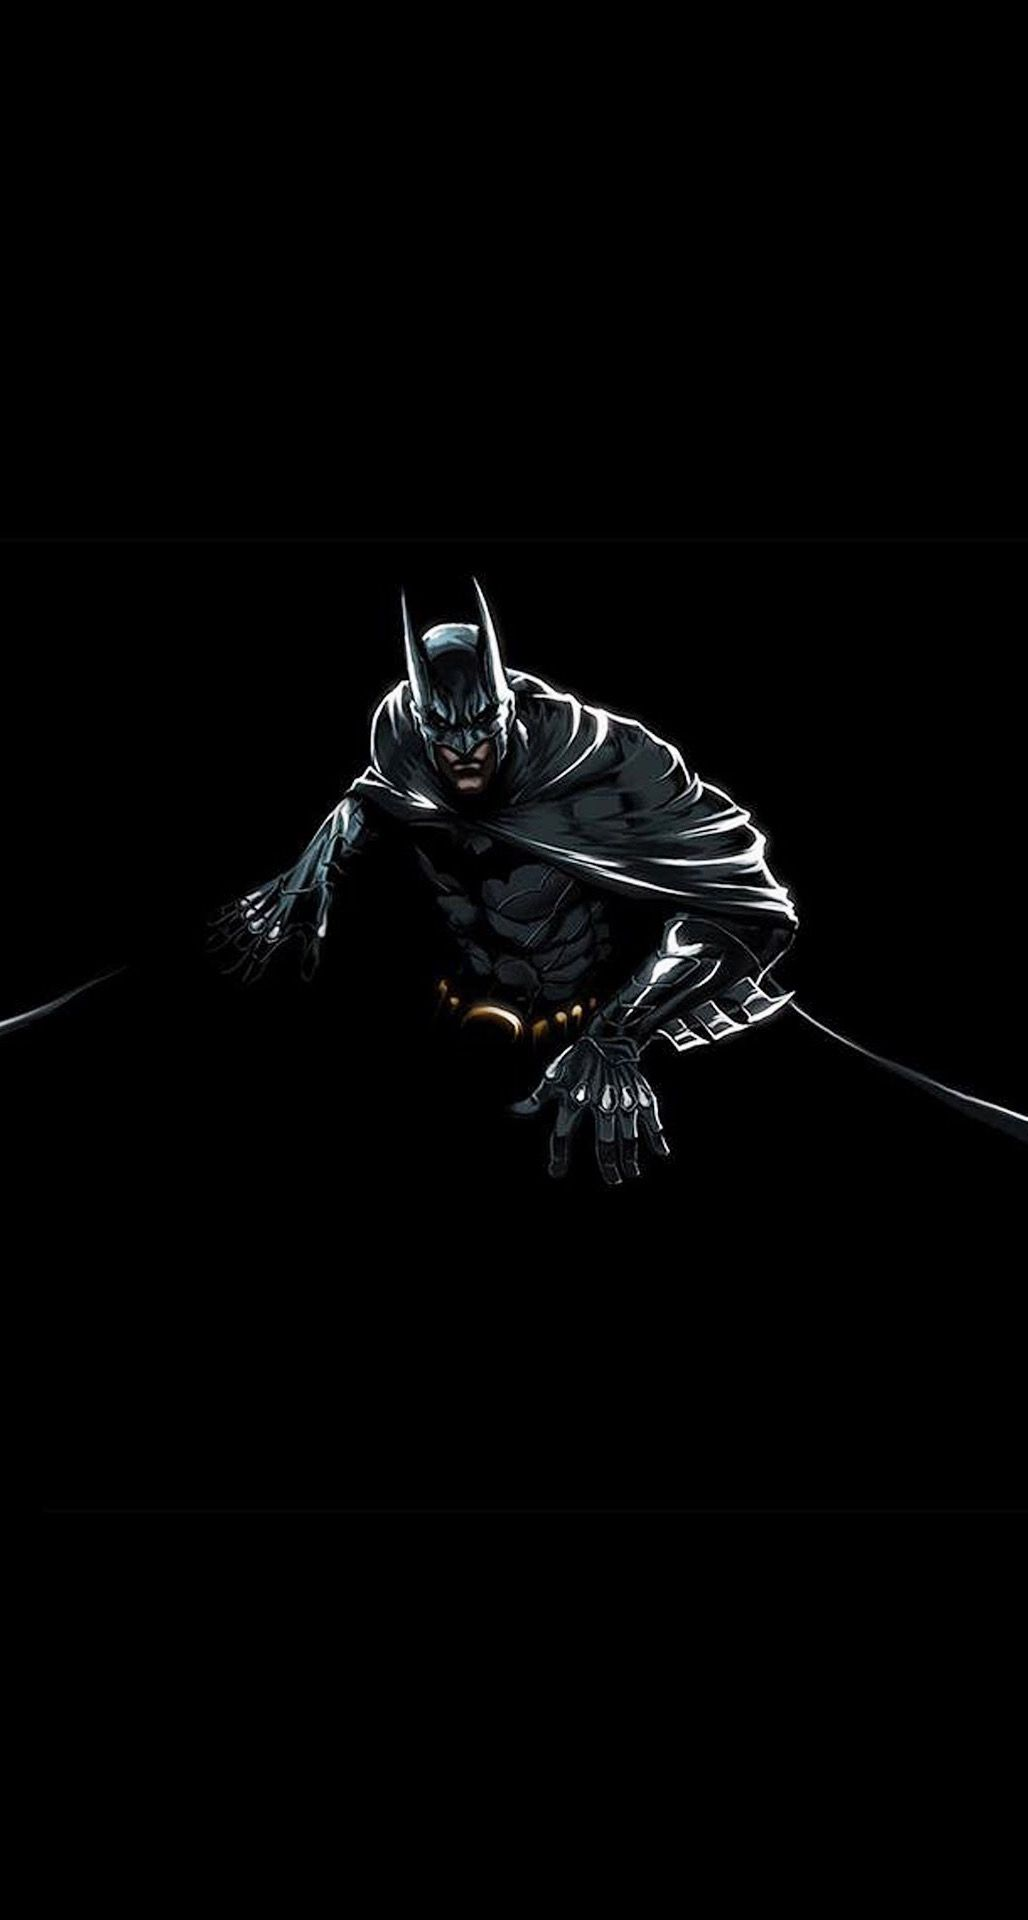 Spectacular Iphone 6 Wallpaper Hd 1080p Batman Wallpaper Batman